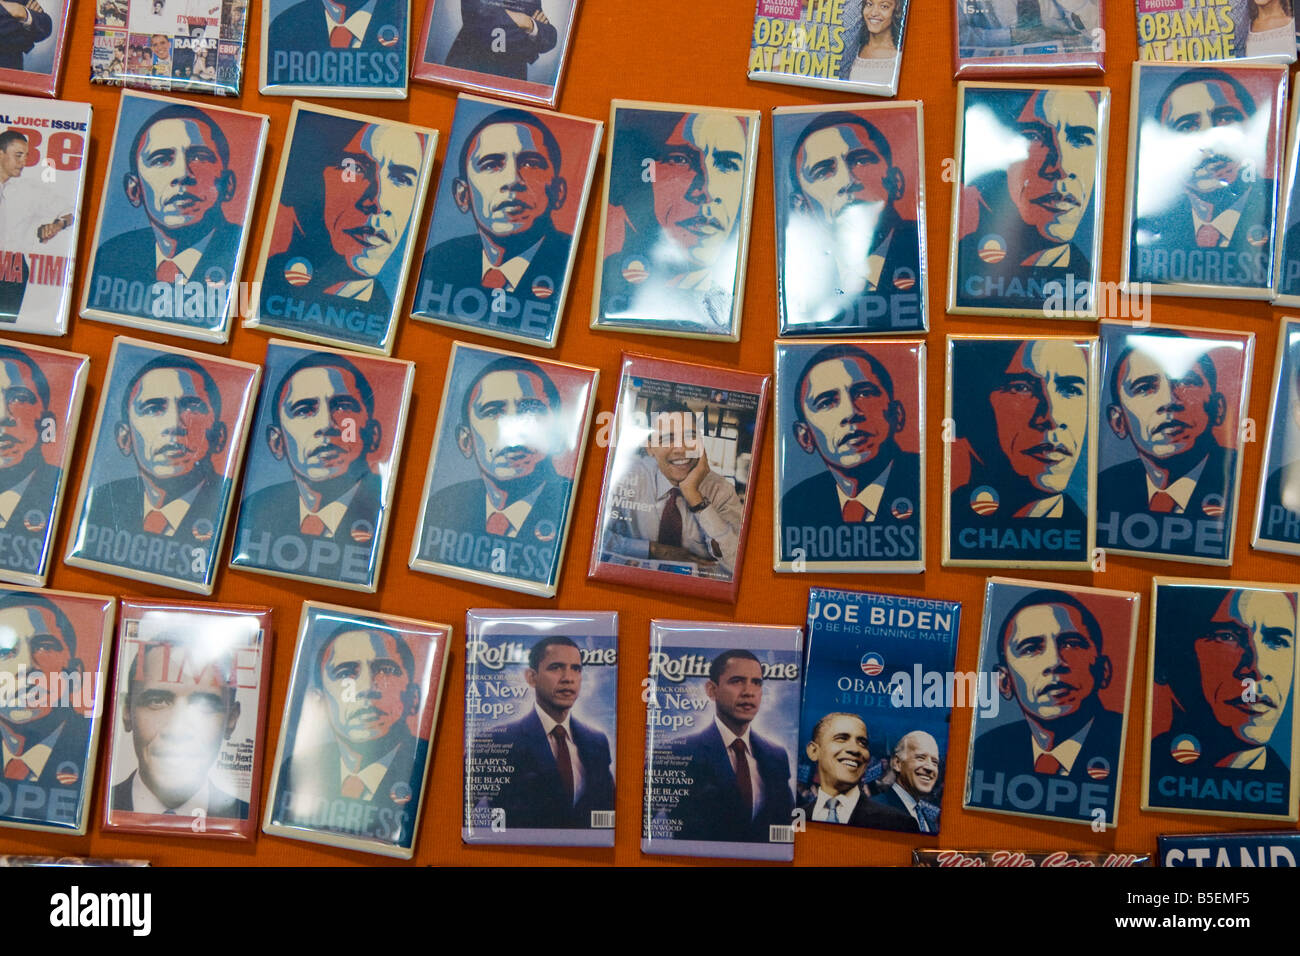 Barack Obama fridge magnets for sale by a street vendor - Stock Image